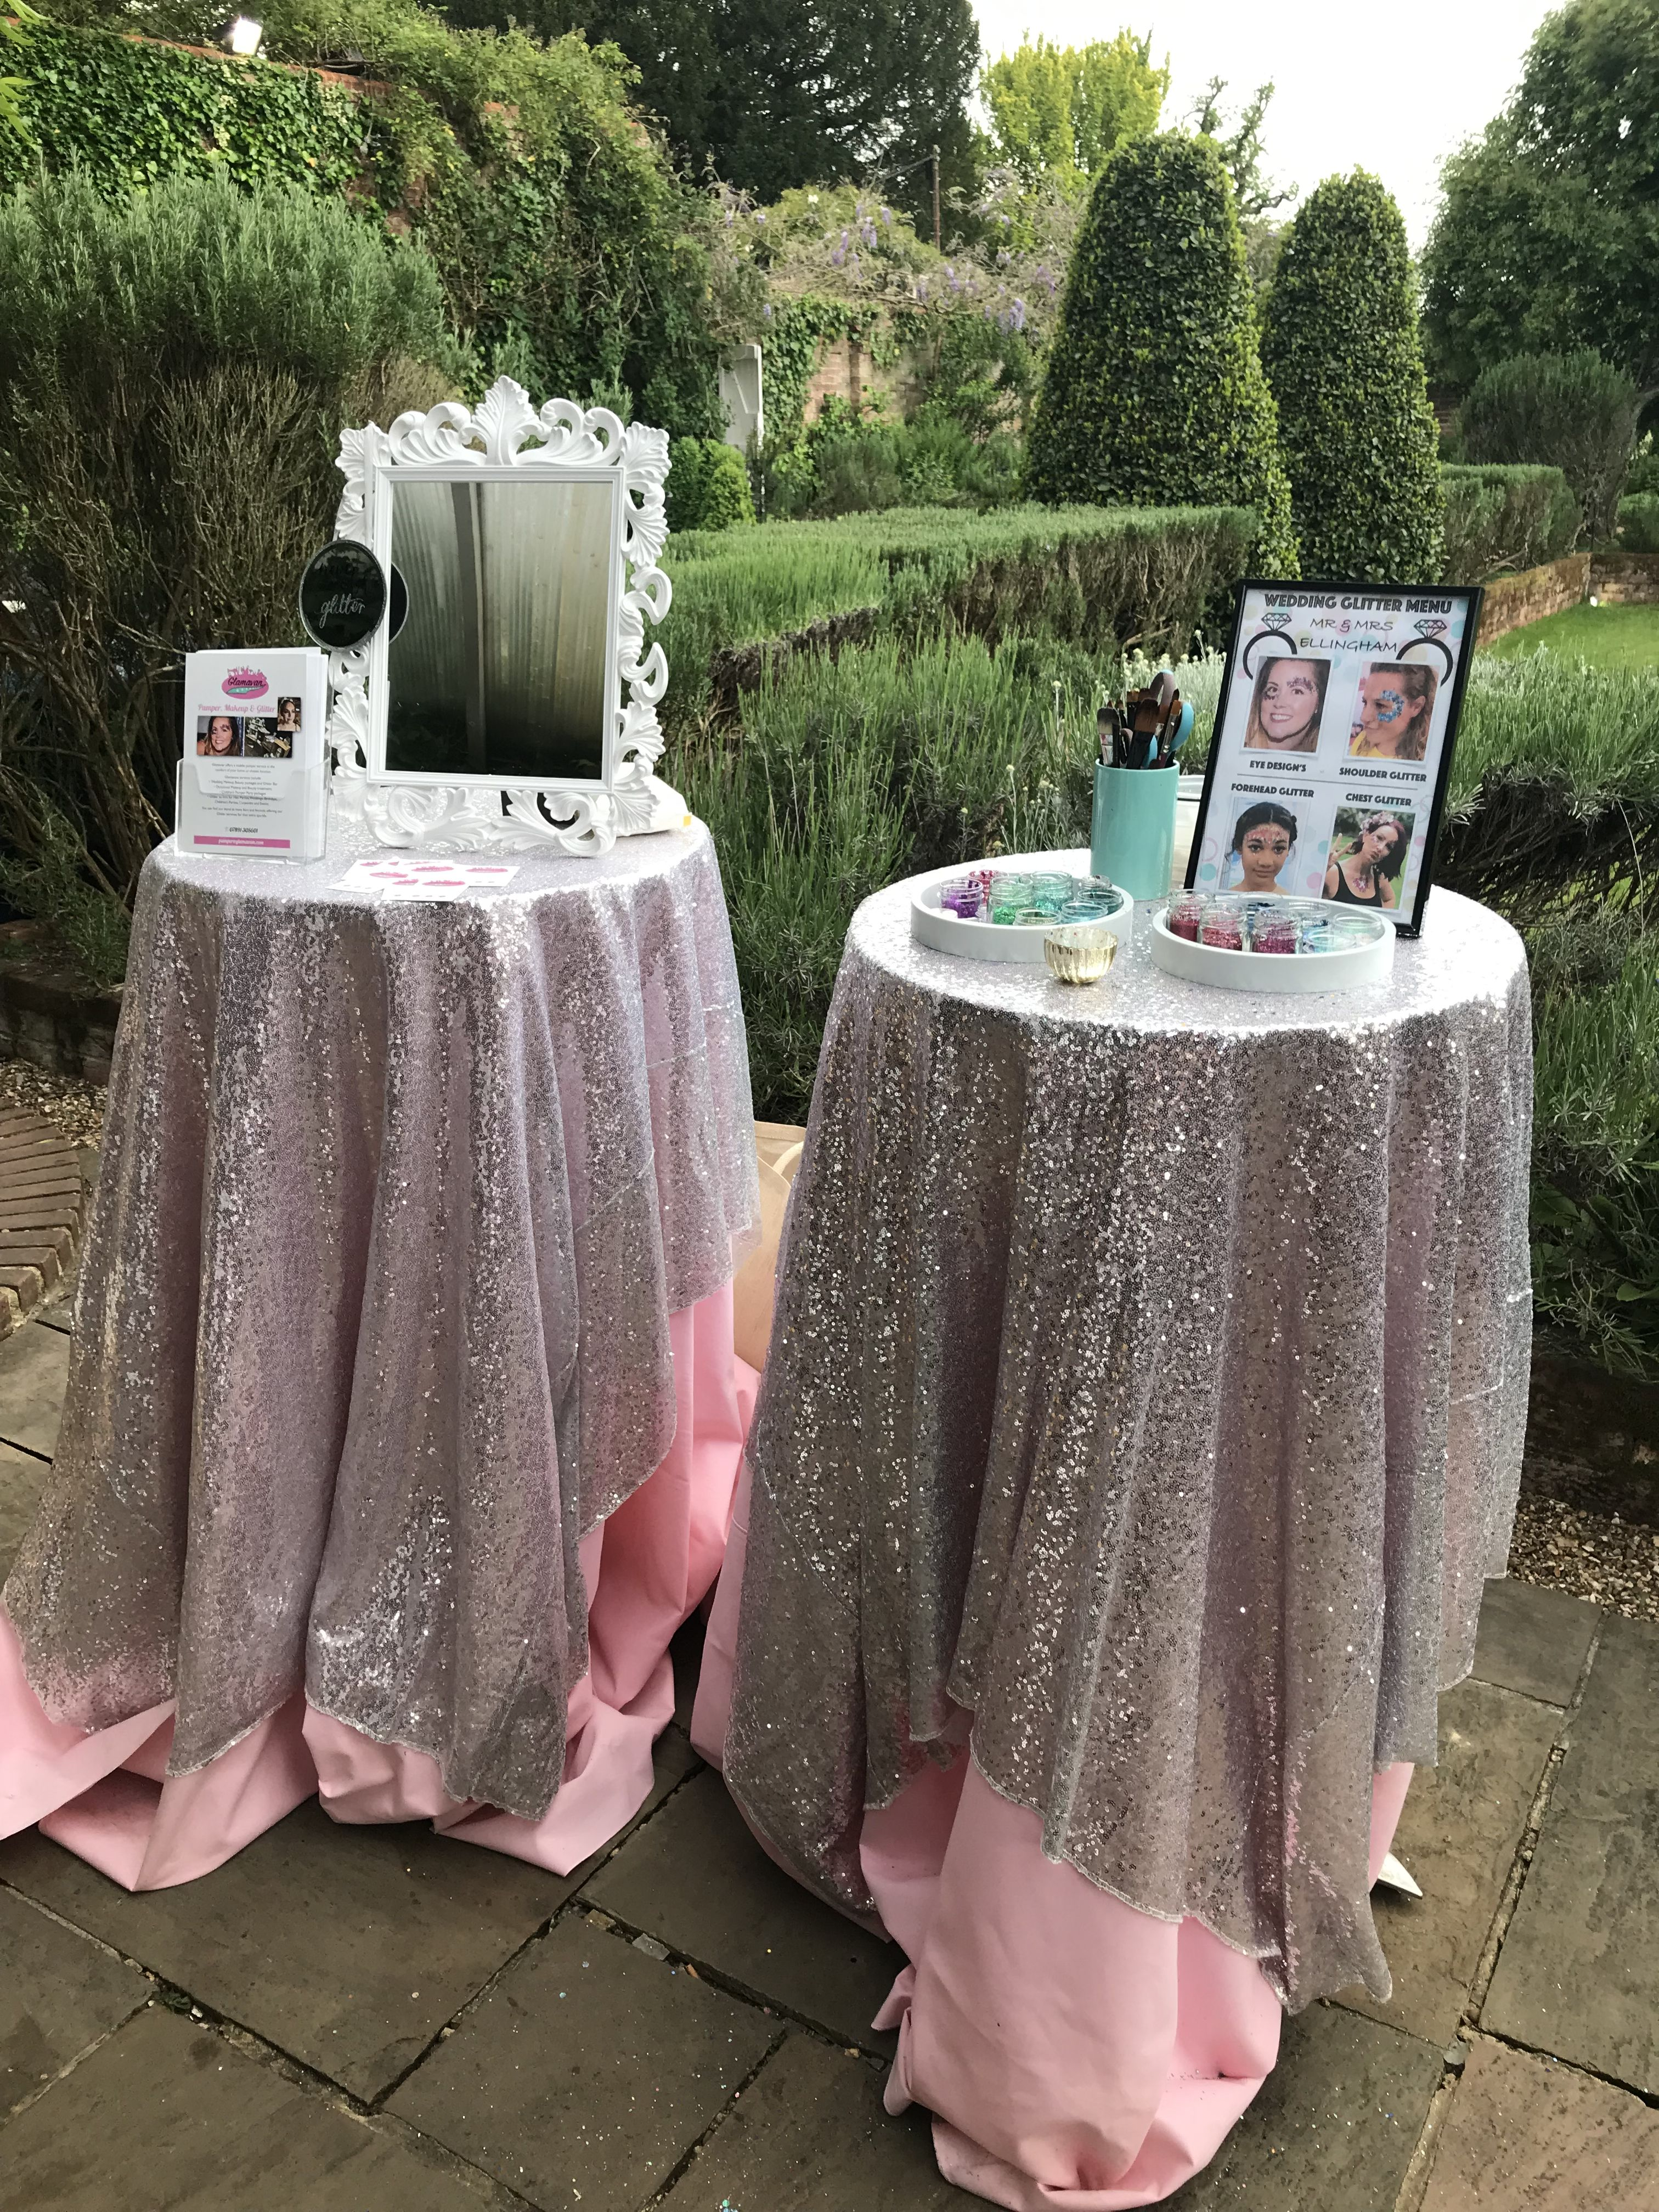 What more could you want at your wedding than to have an